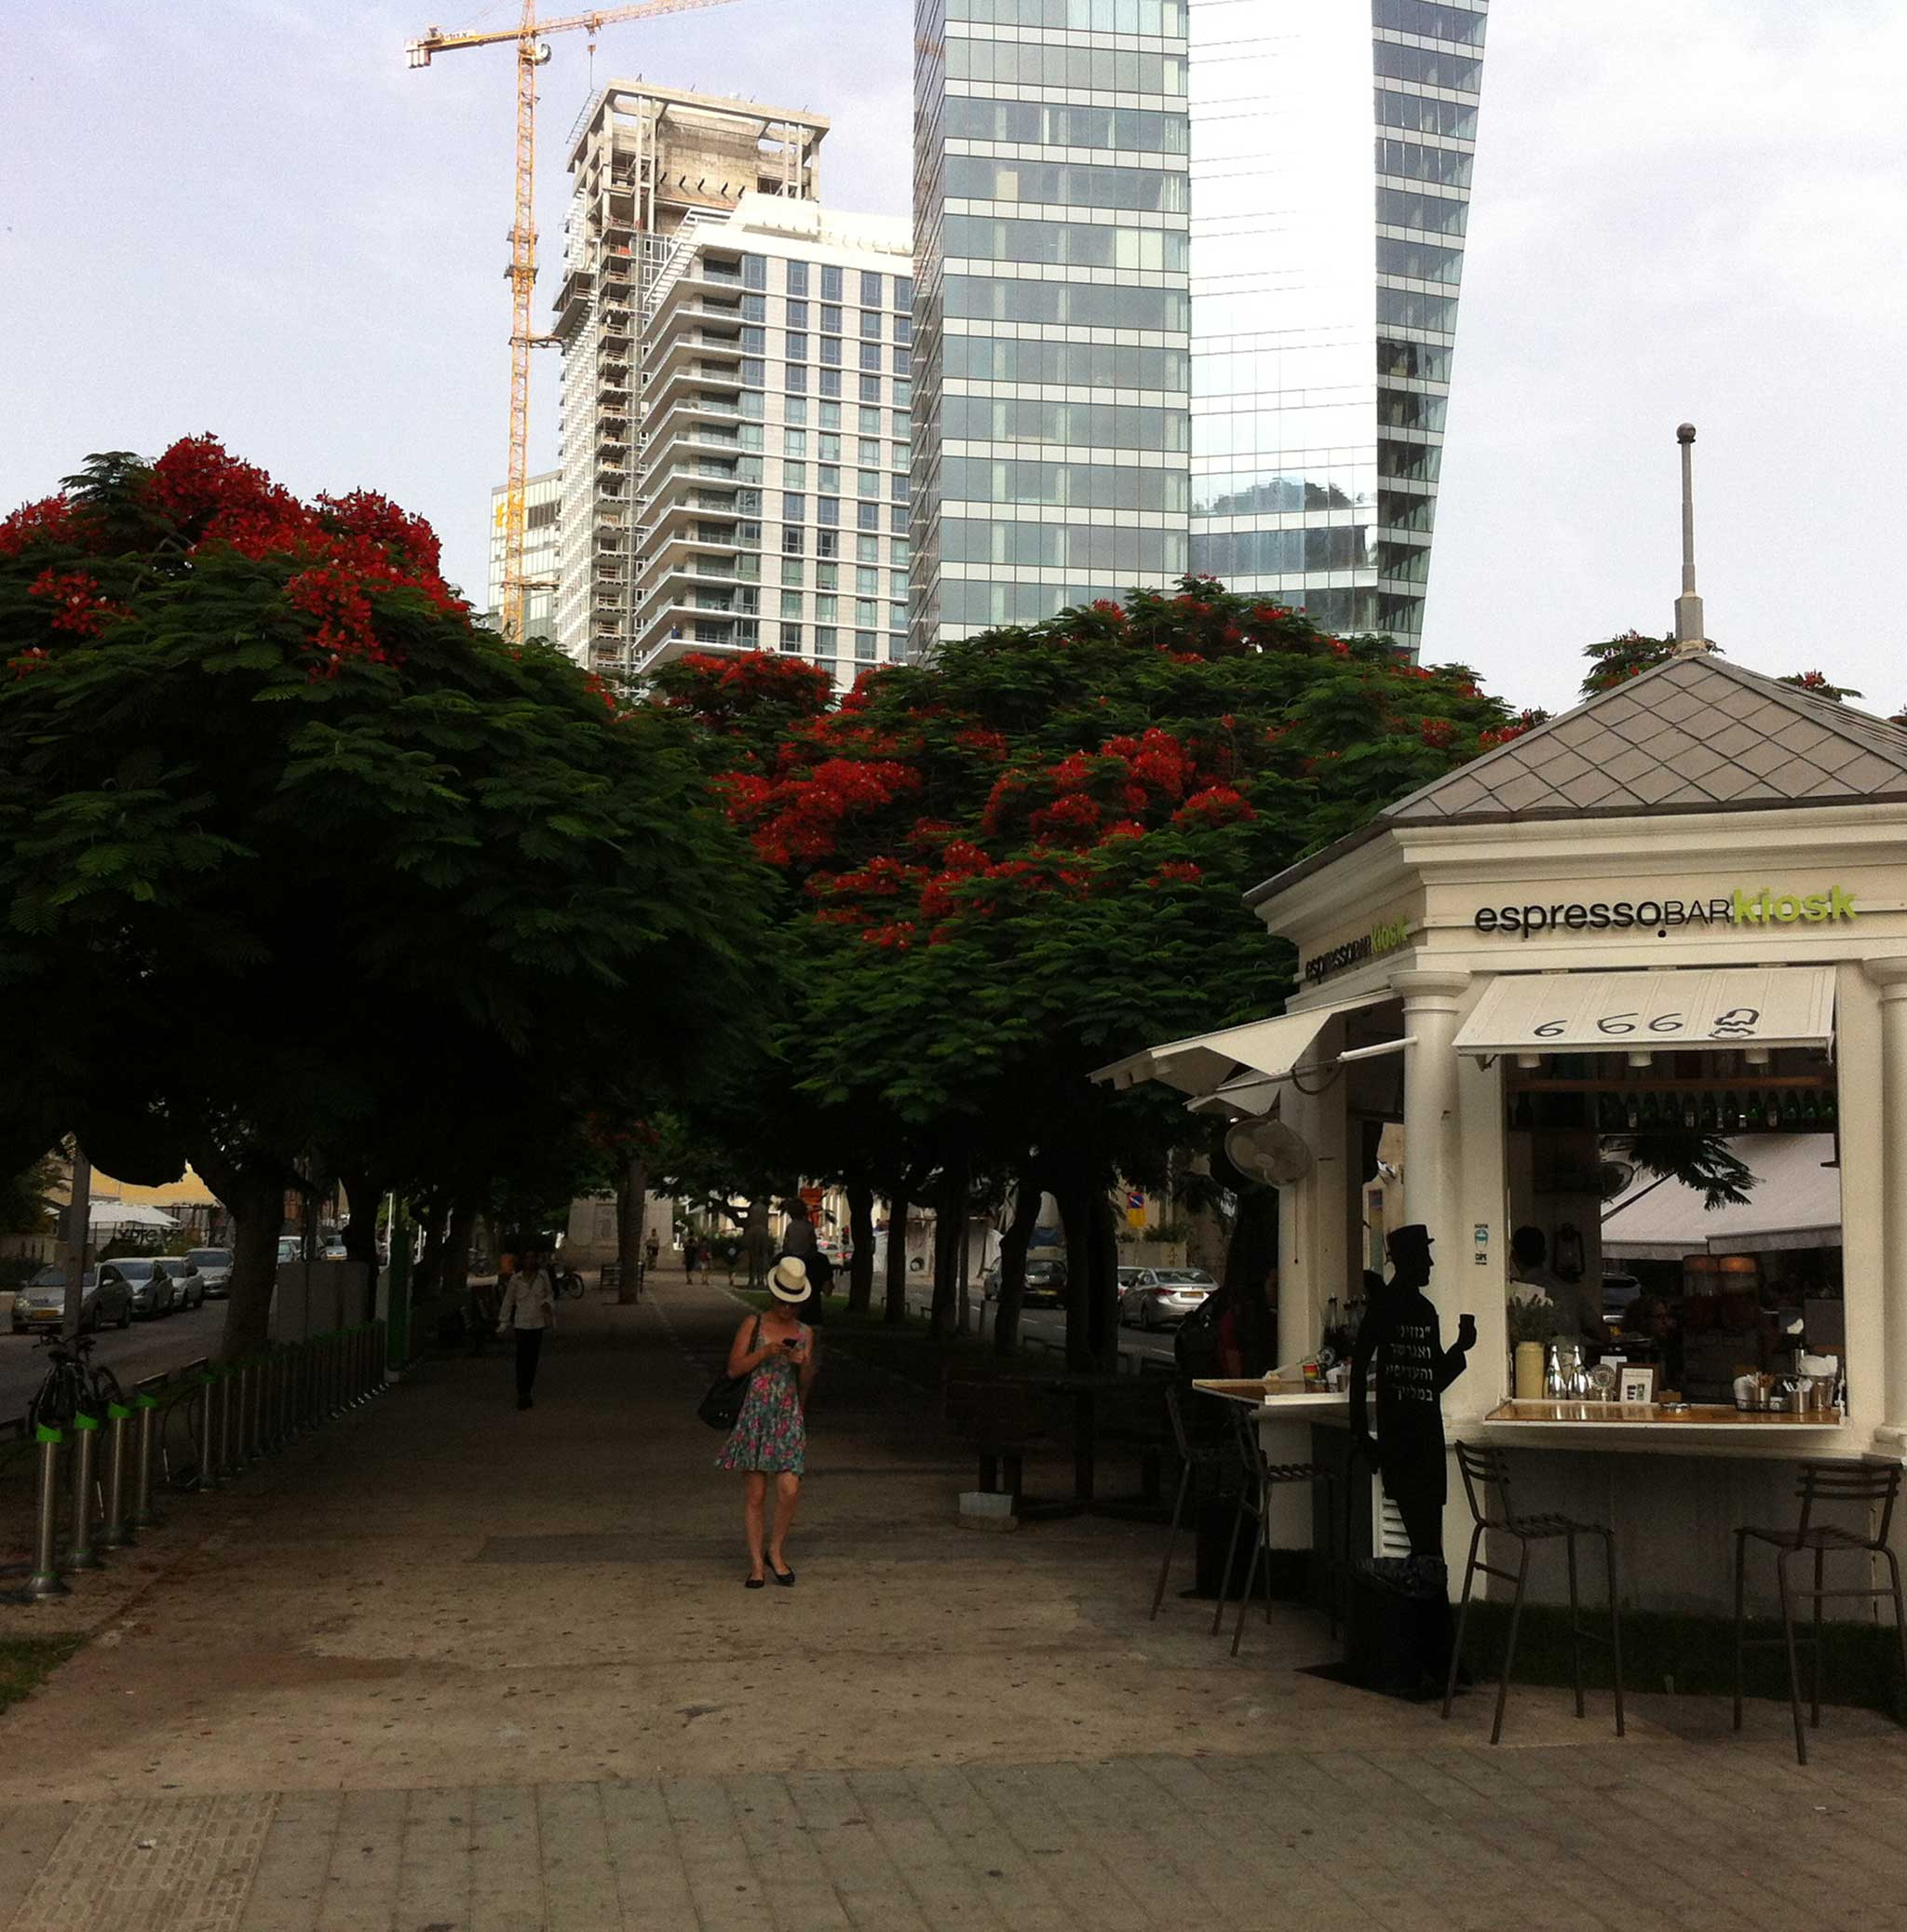 The First Kiosk on Tel Aviv audio tour The Trail of Independence: Tracing the origins of modern Tel Aviv